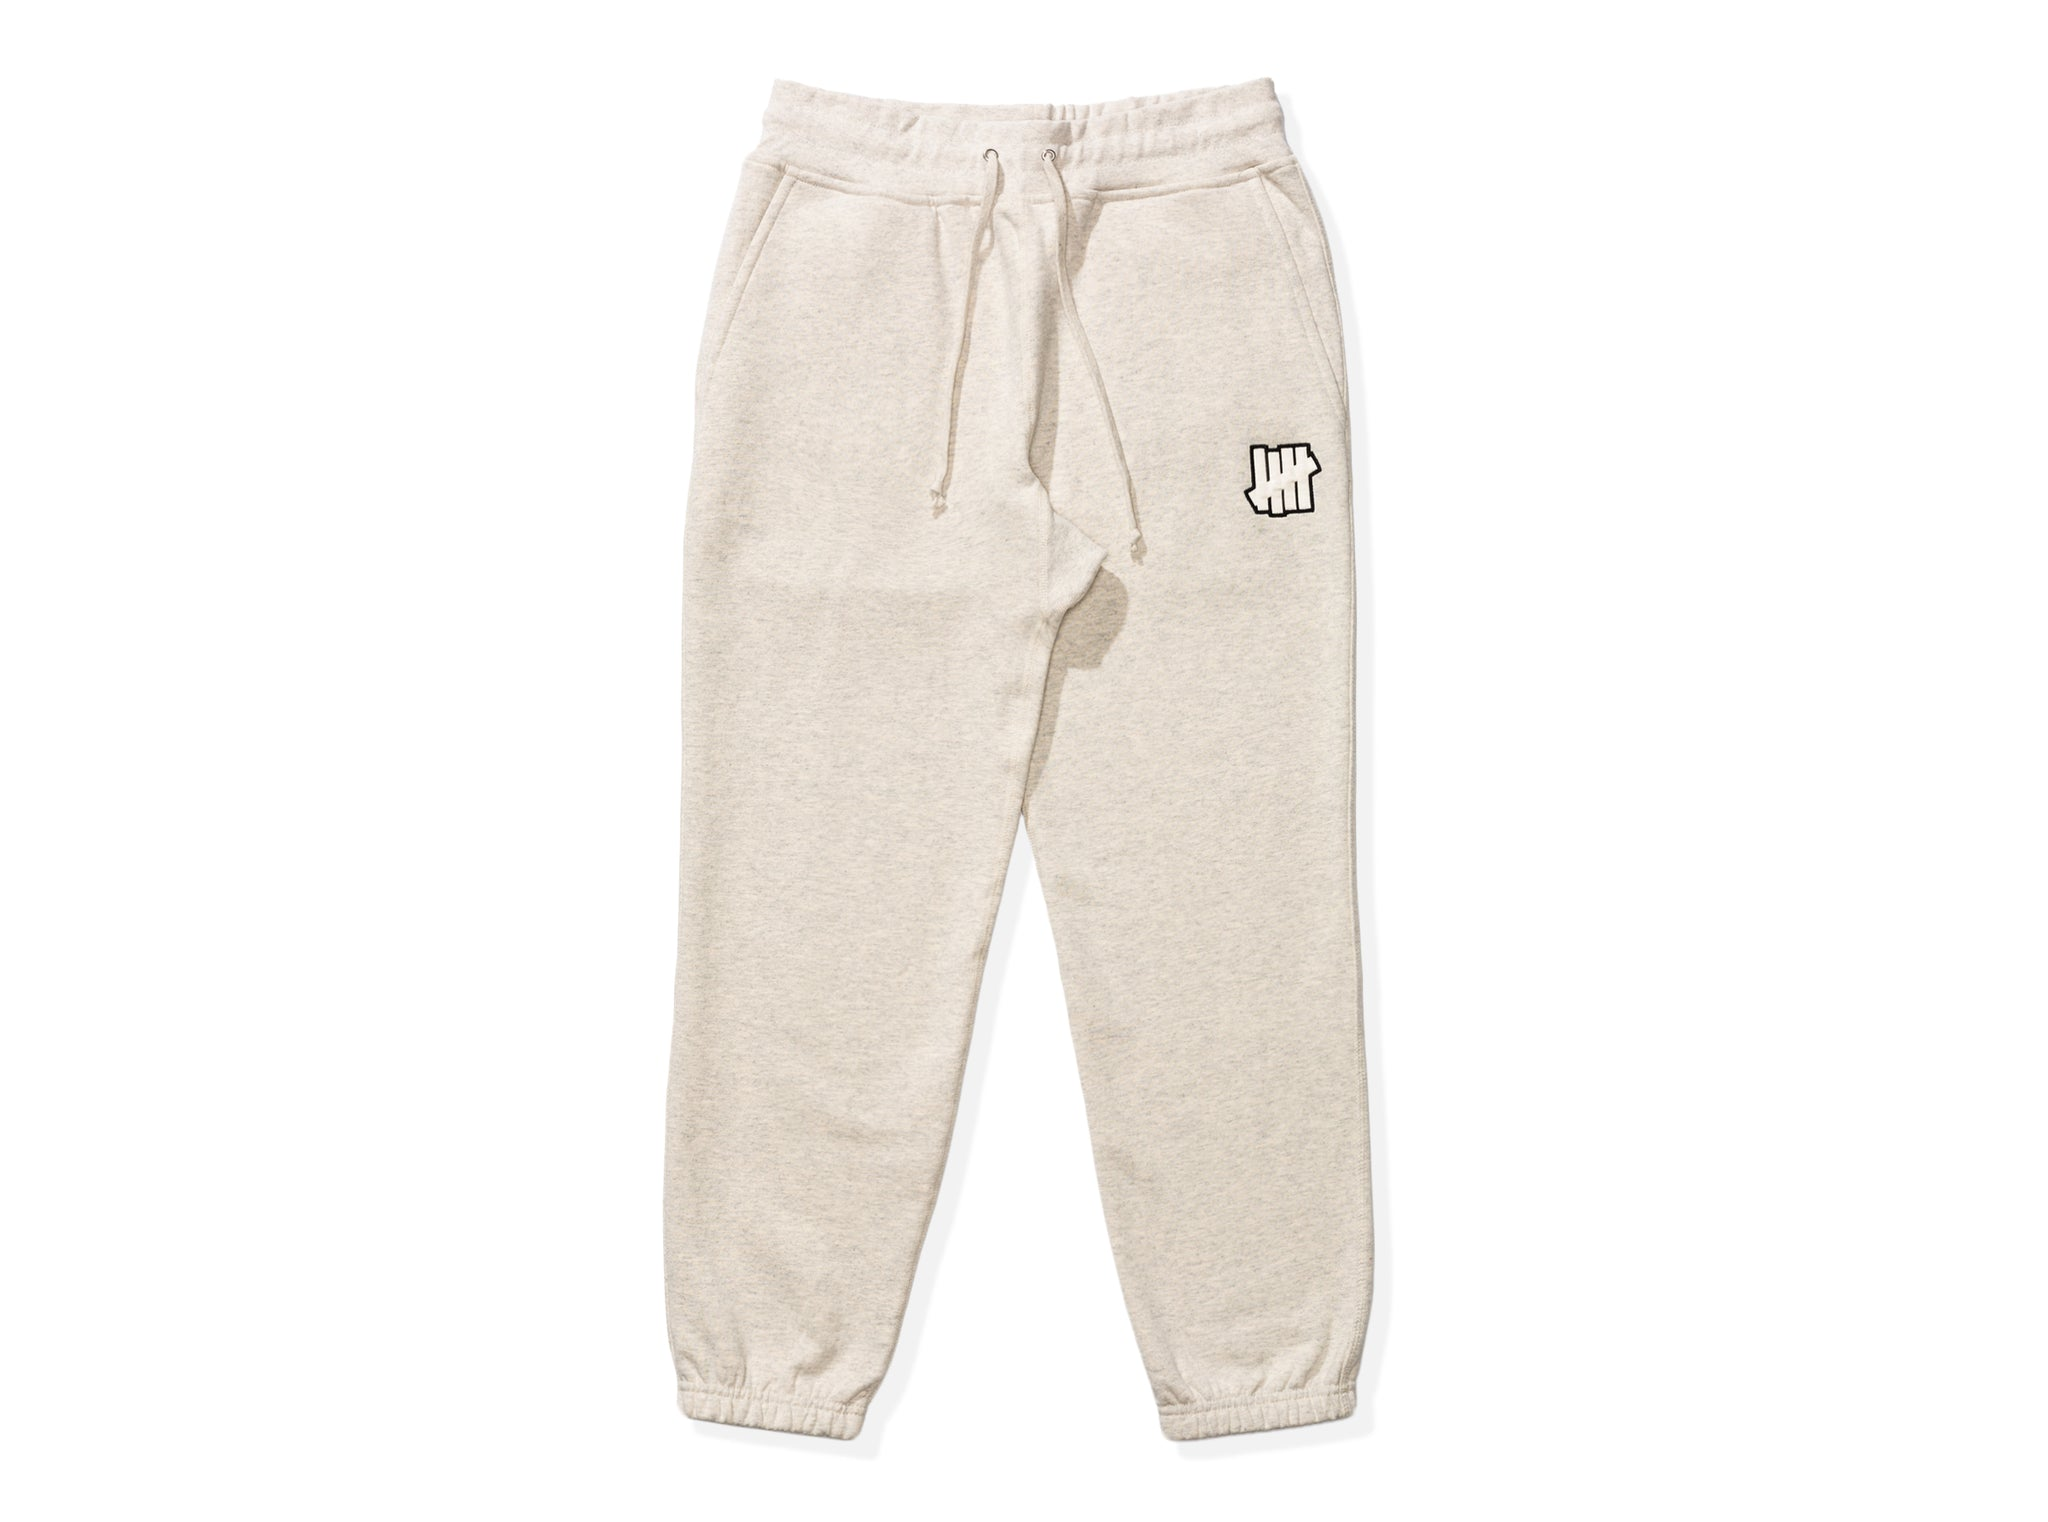 UNDEFEATED SATIN ICON SWEATPANT